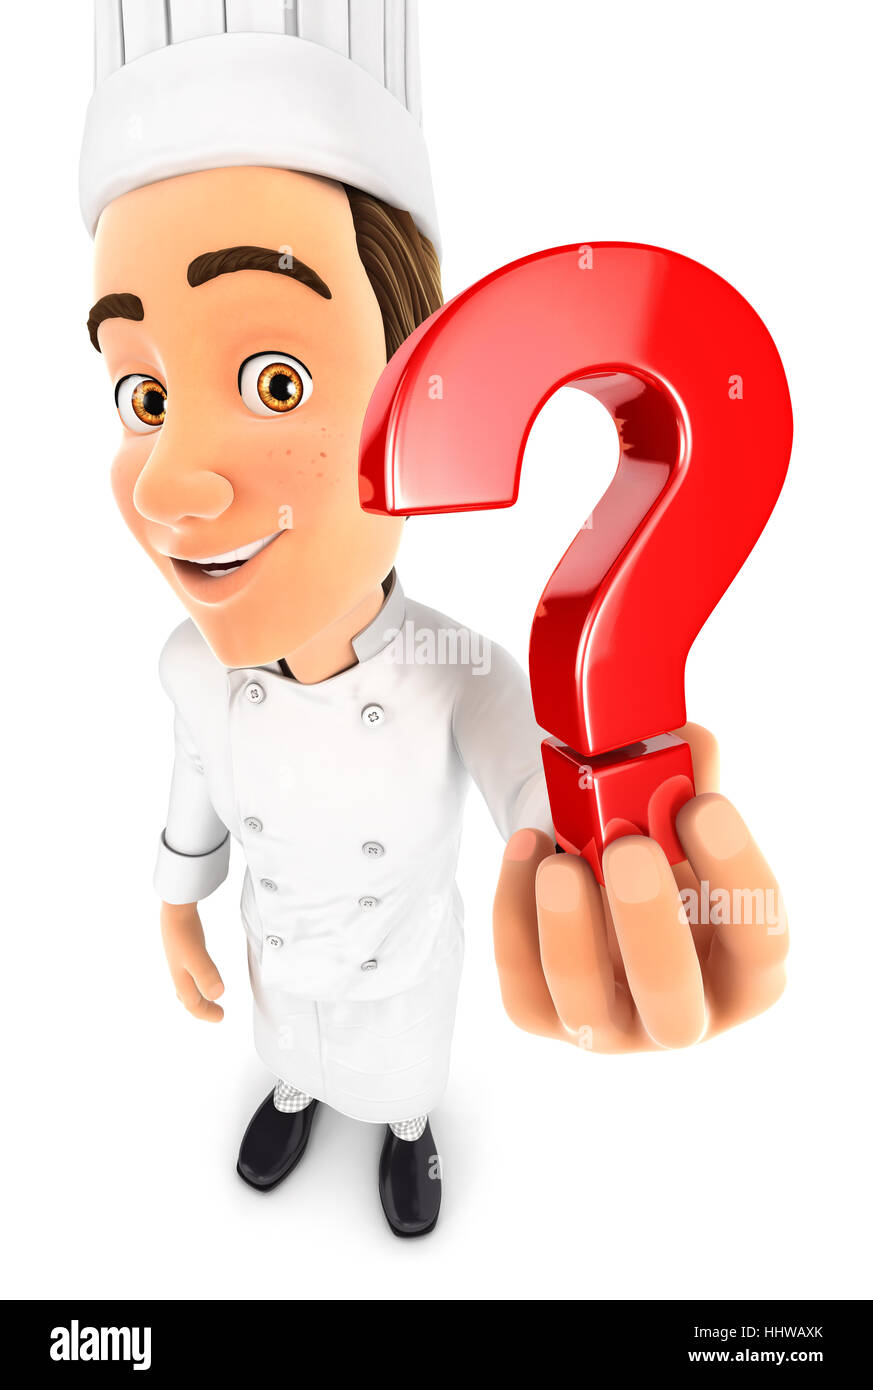 3d head chef holding a question mark icon, illustration with isolated white background Stock Photo